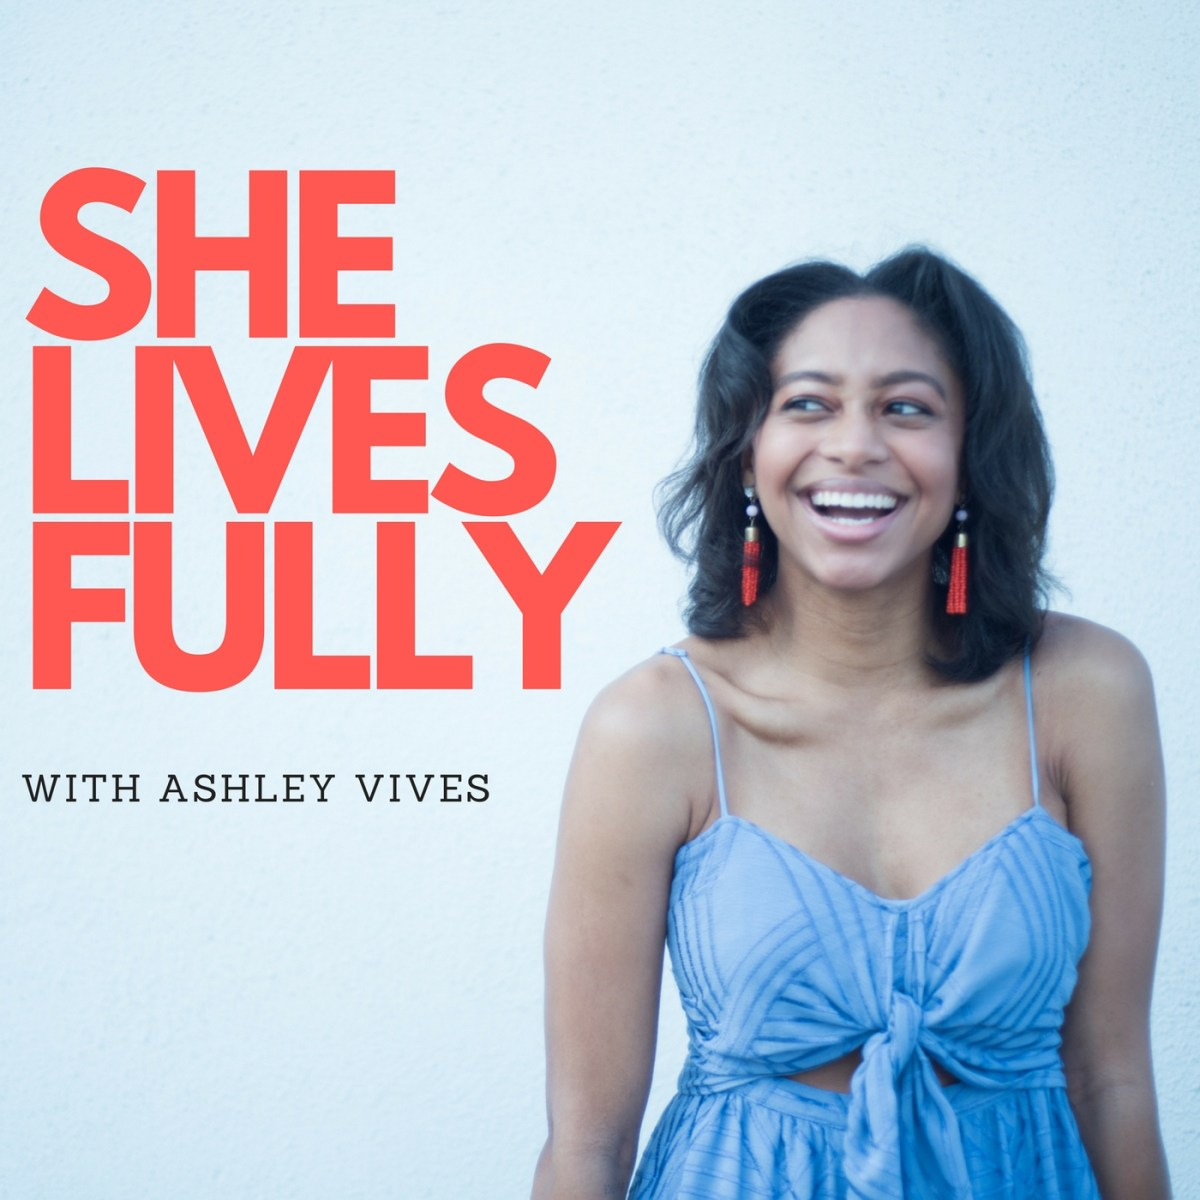 005: Behind the Scenes of The Bachelor with Jaimi King | She Lives Fully Podcast